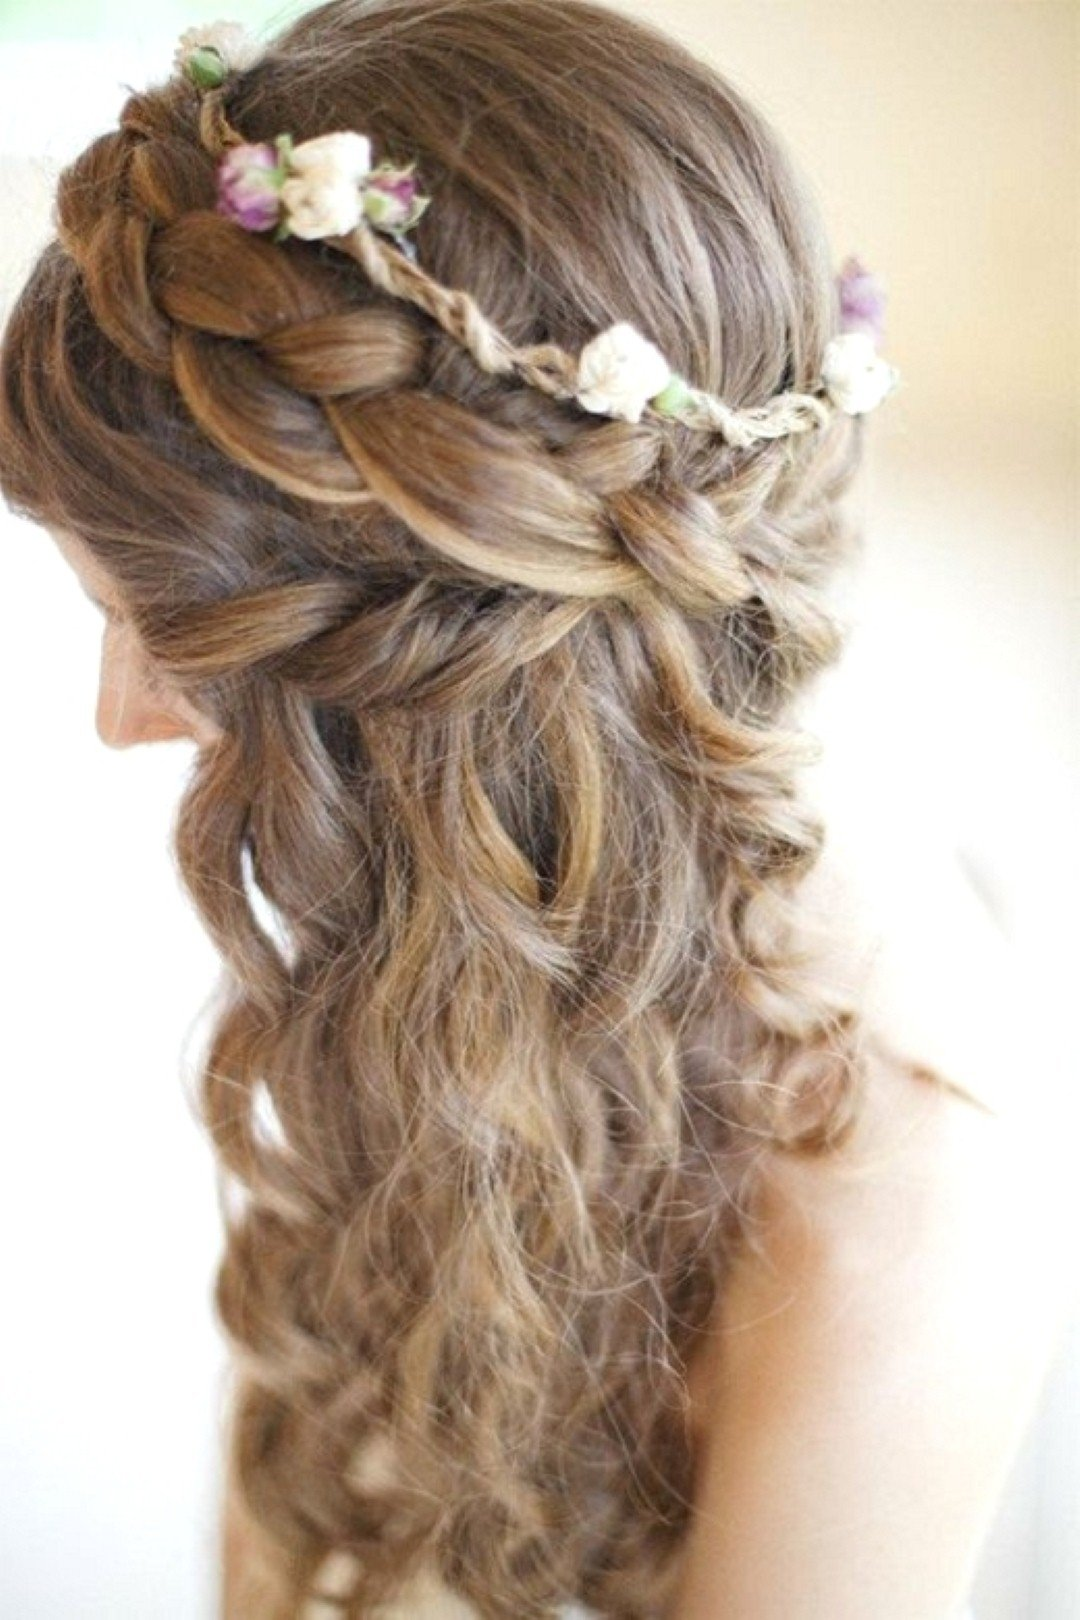 10 Most Recommended Homecoming Hair Ideas For Long Hair 30 prettiest homecoming hairstyles ideas prom hairstyles prom and 1 2020